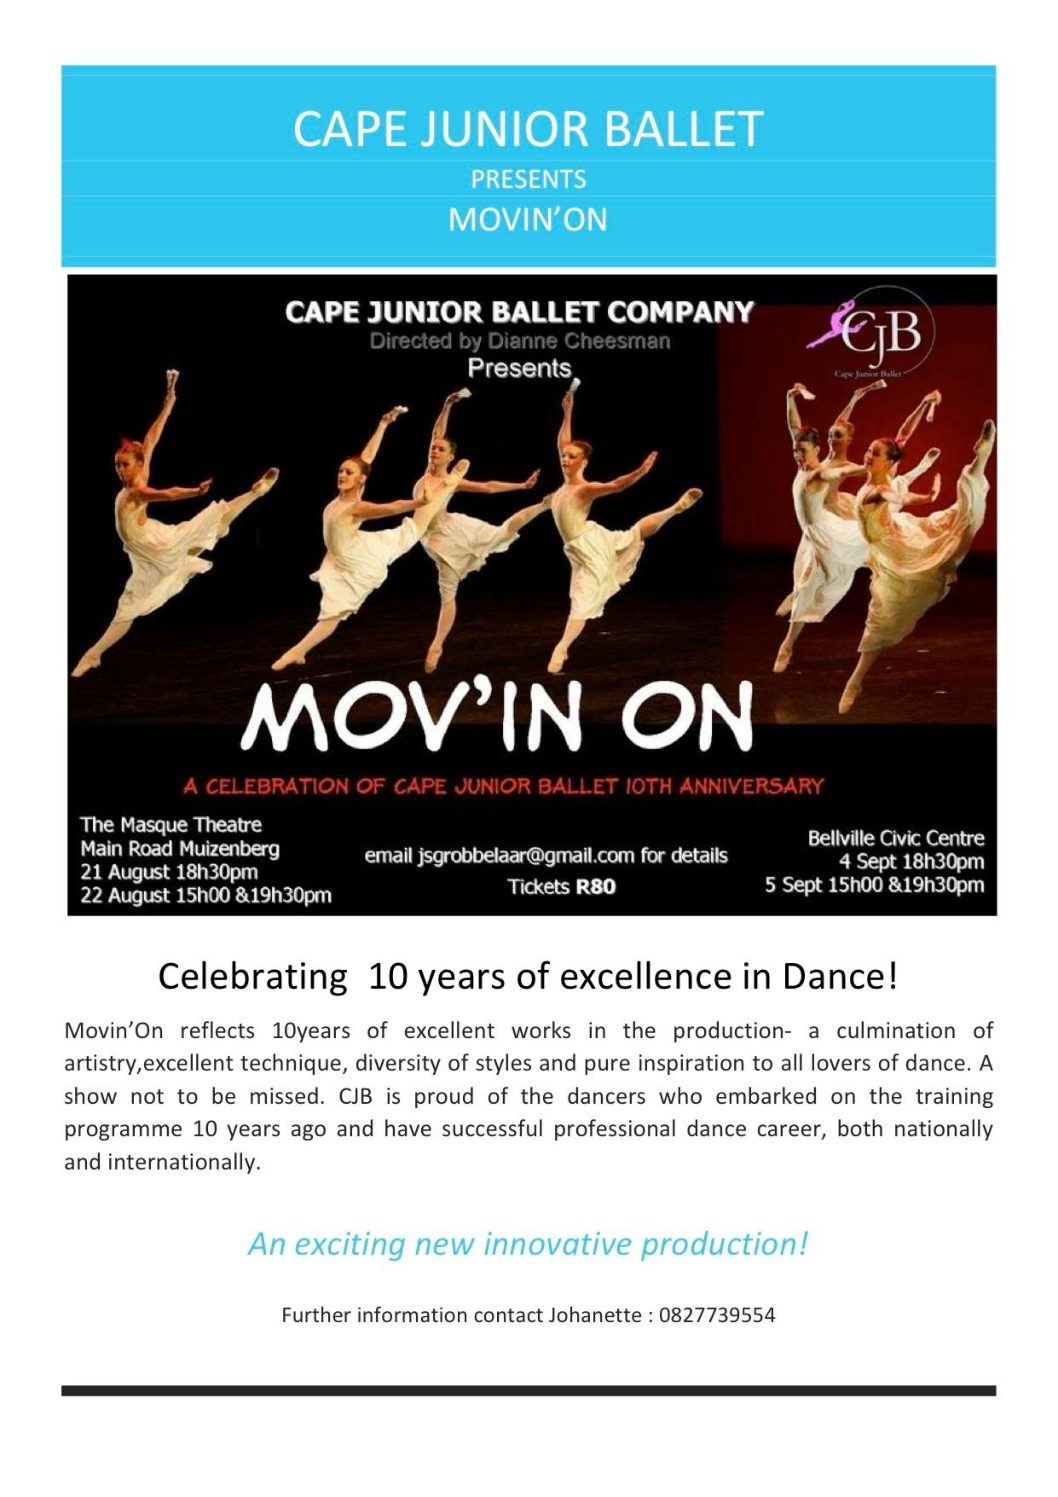 Mov'in On 2015 by Cape Junior Ballet